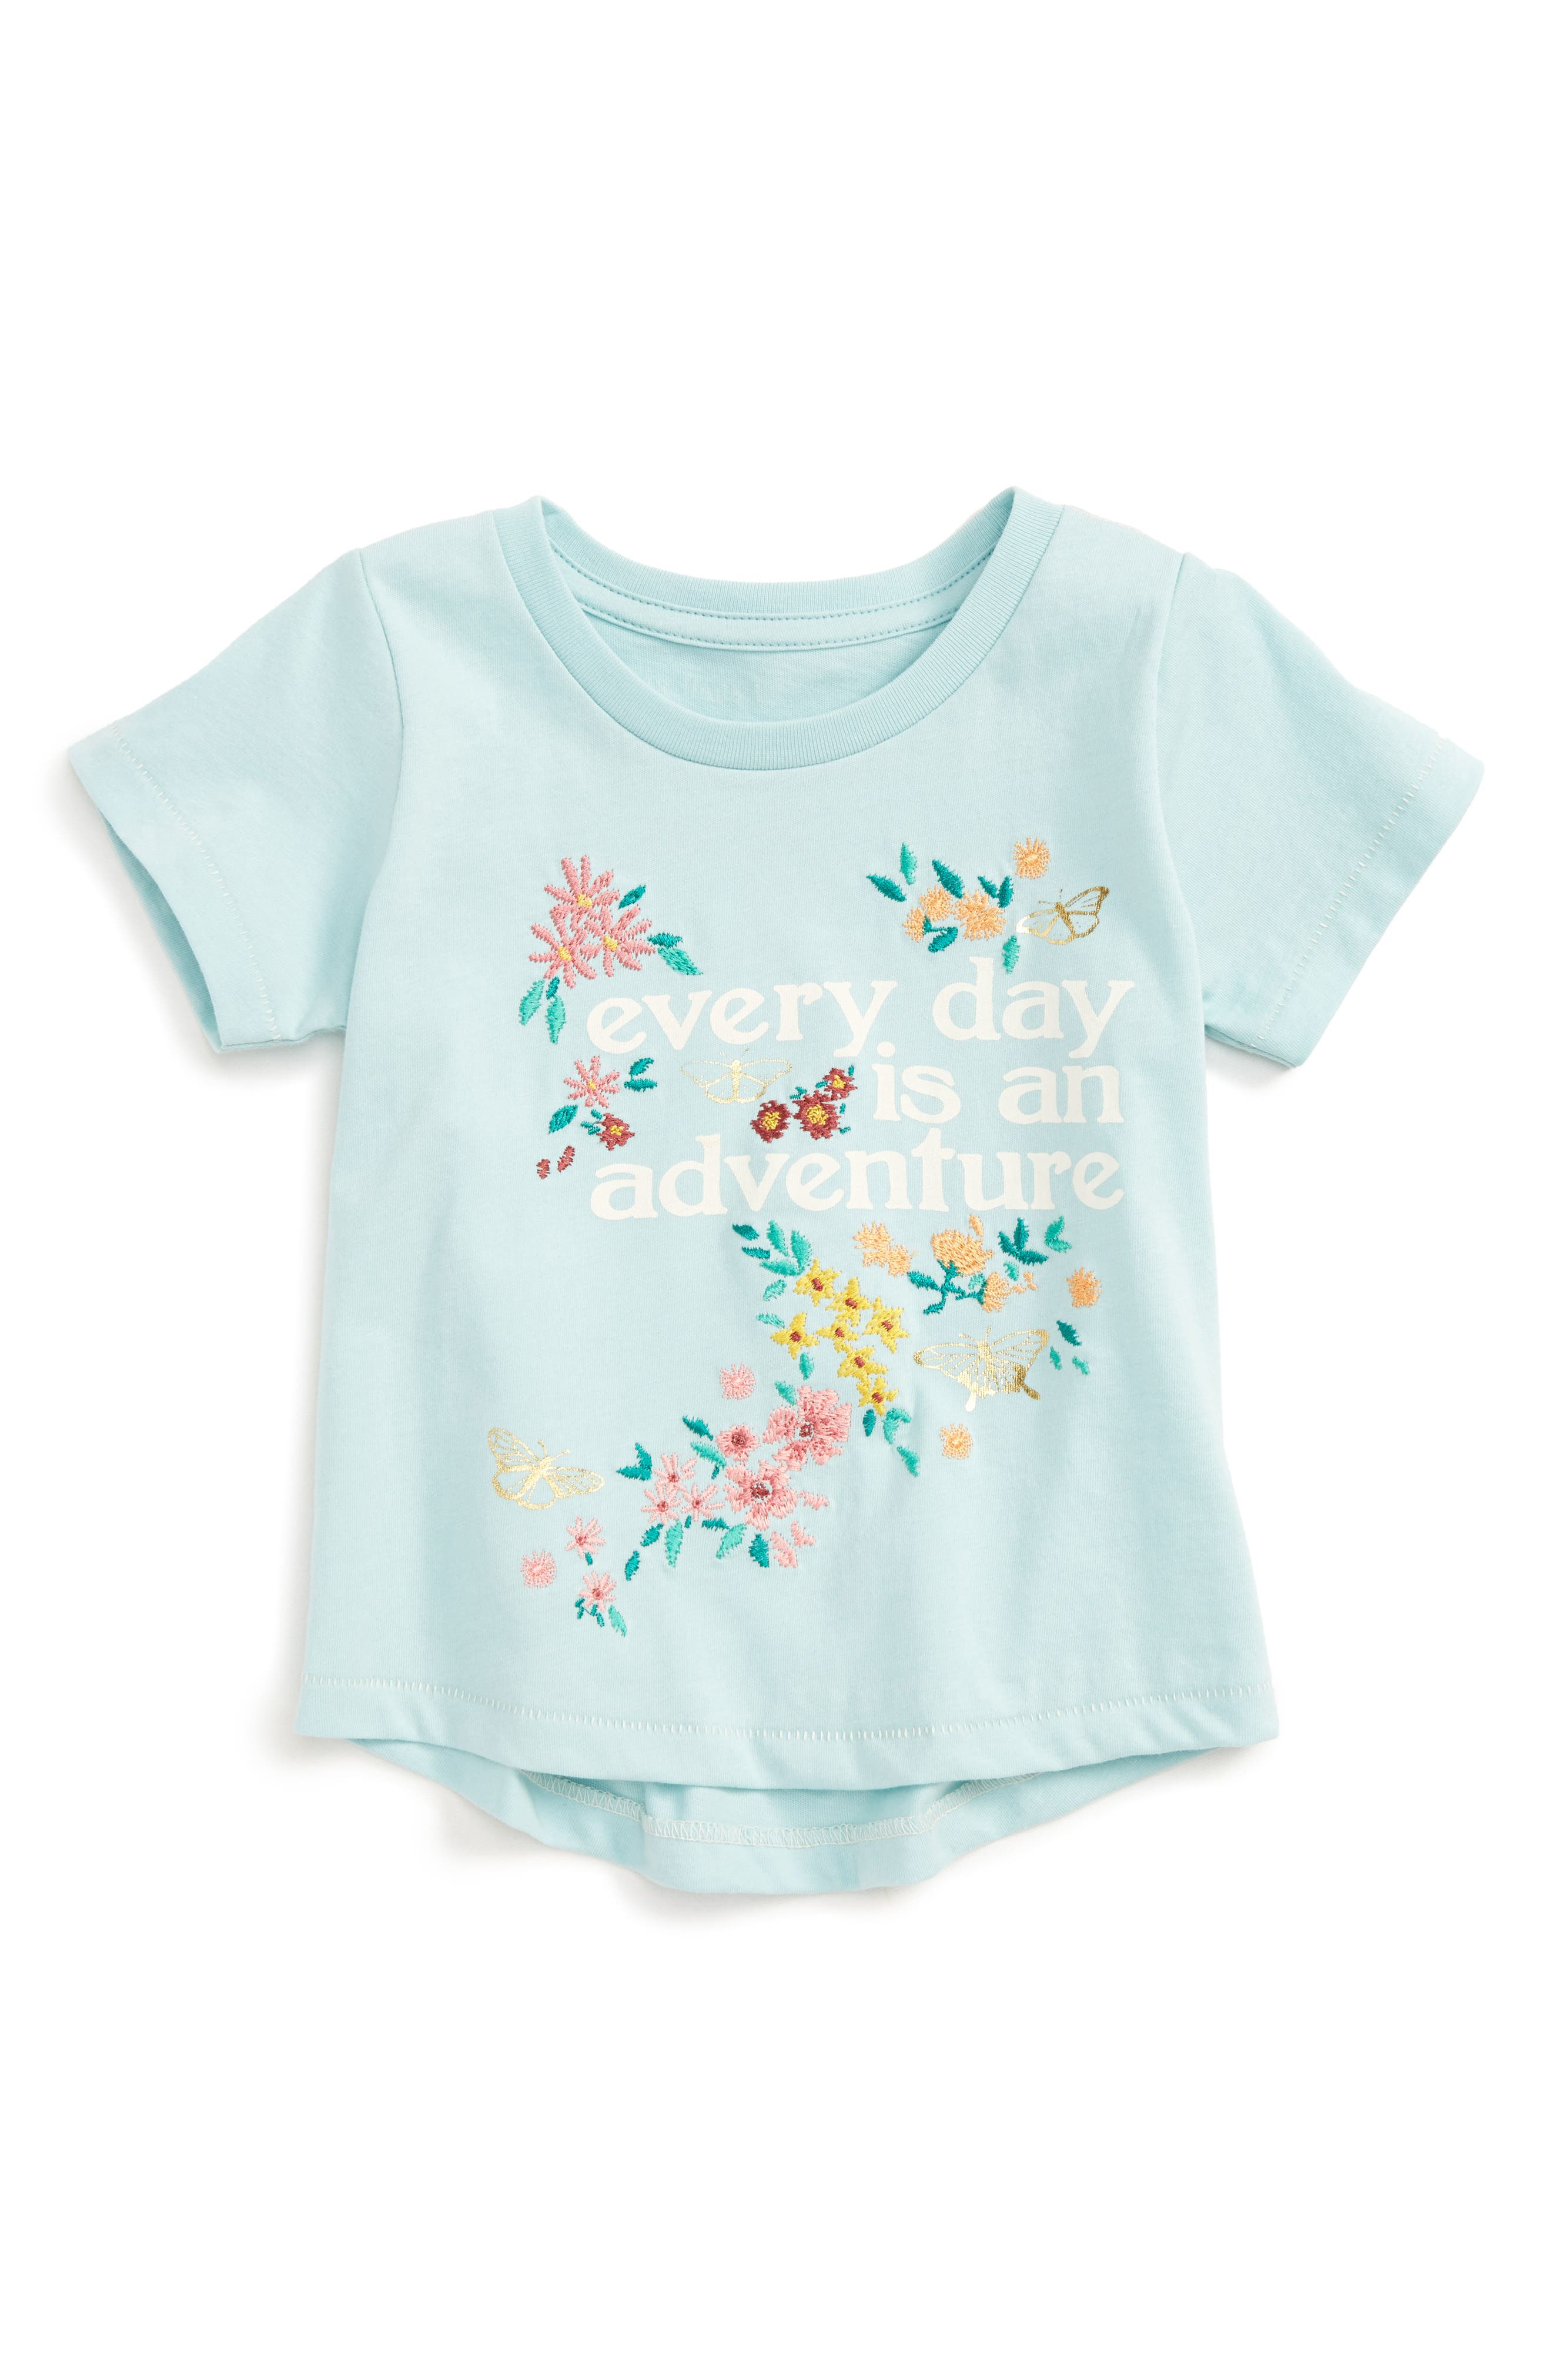 Peek Adventure Graphic Tee (Baby Girls)